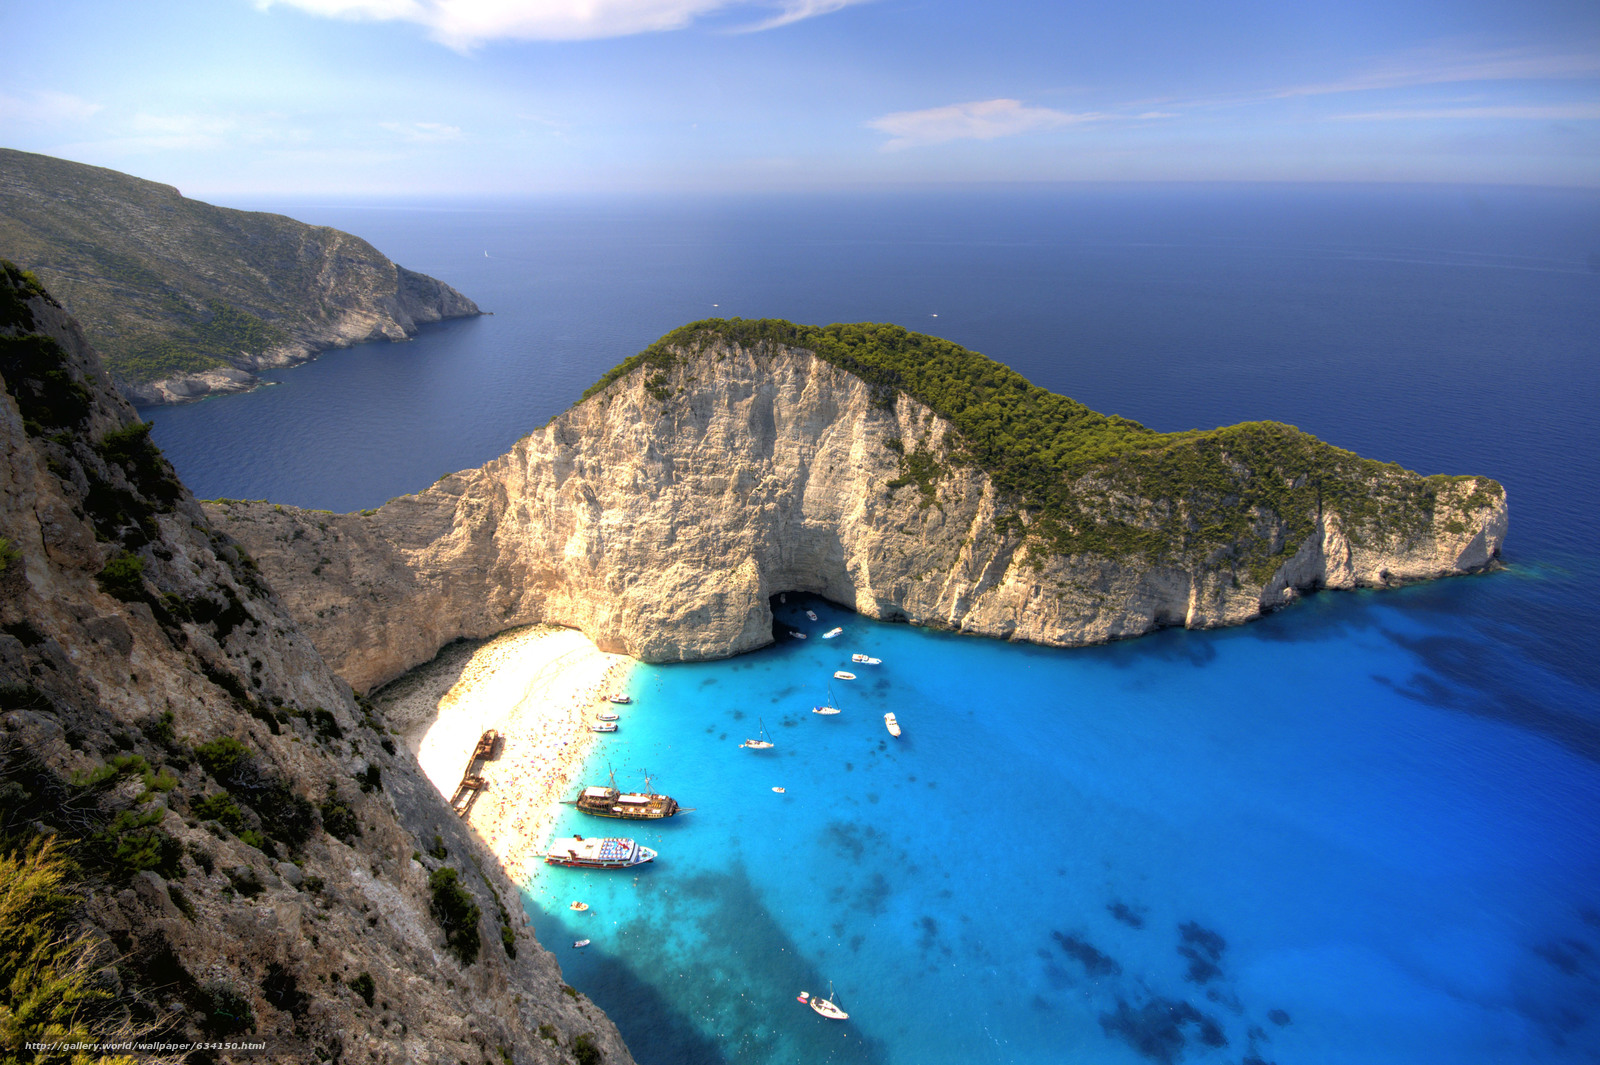 Download Wallpaper Shipwreck Navagio Beach Zakynthos Free Desktop In The Resolution 4310x2868 Picture No634150